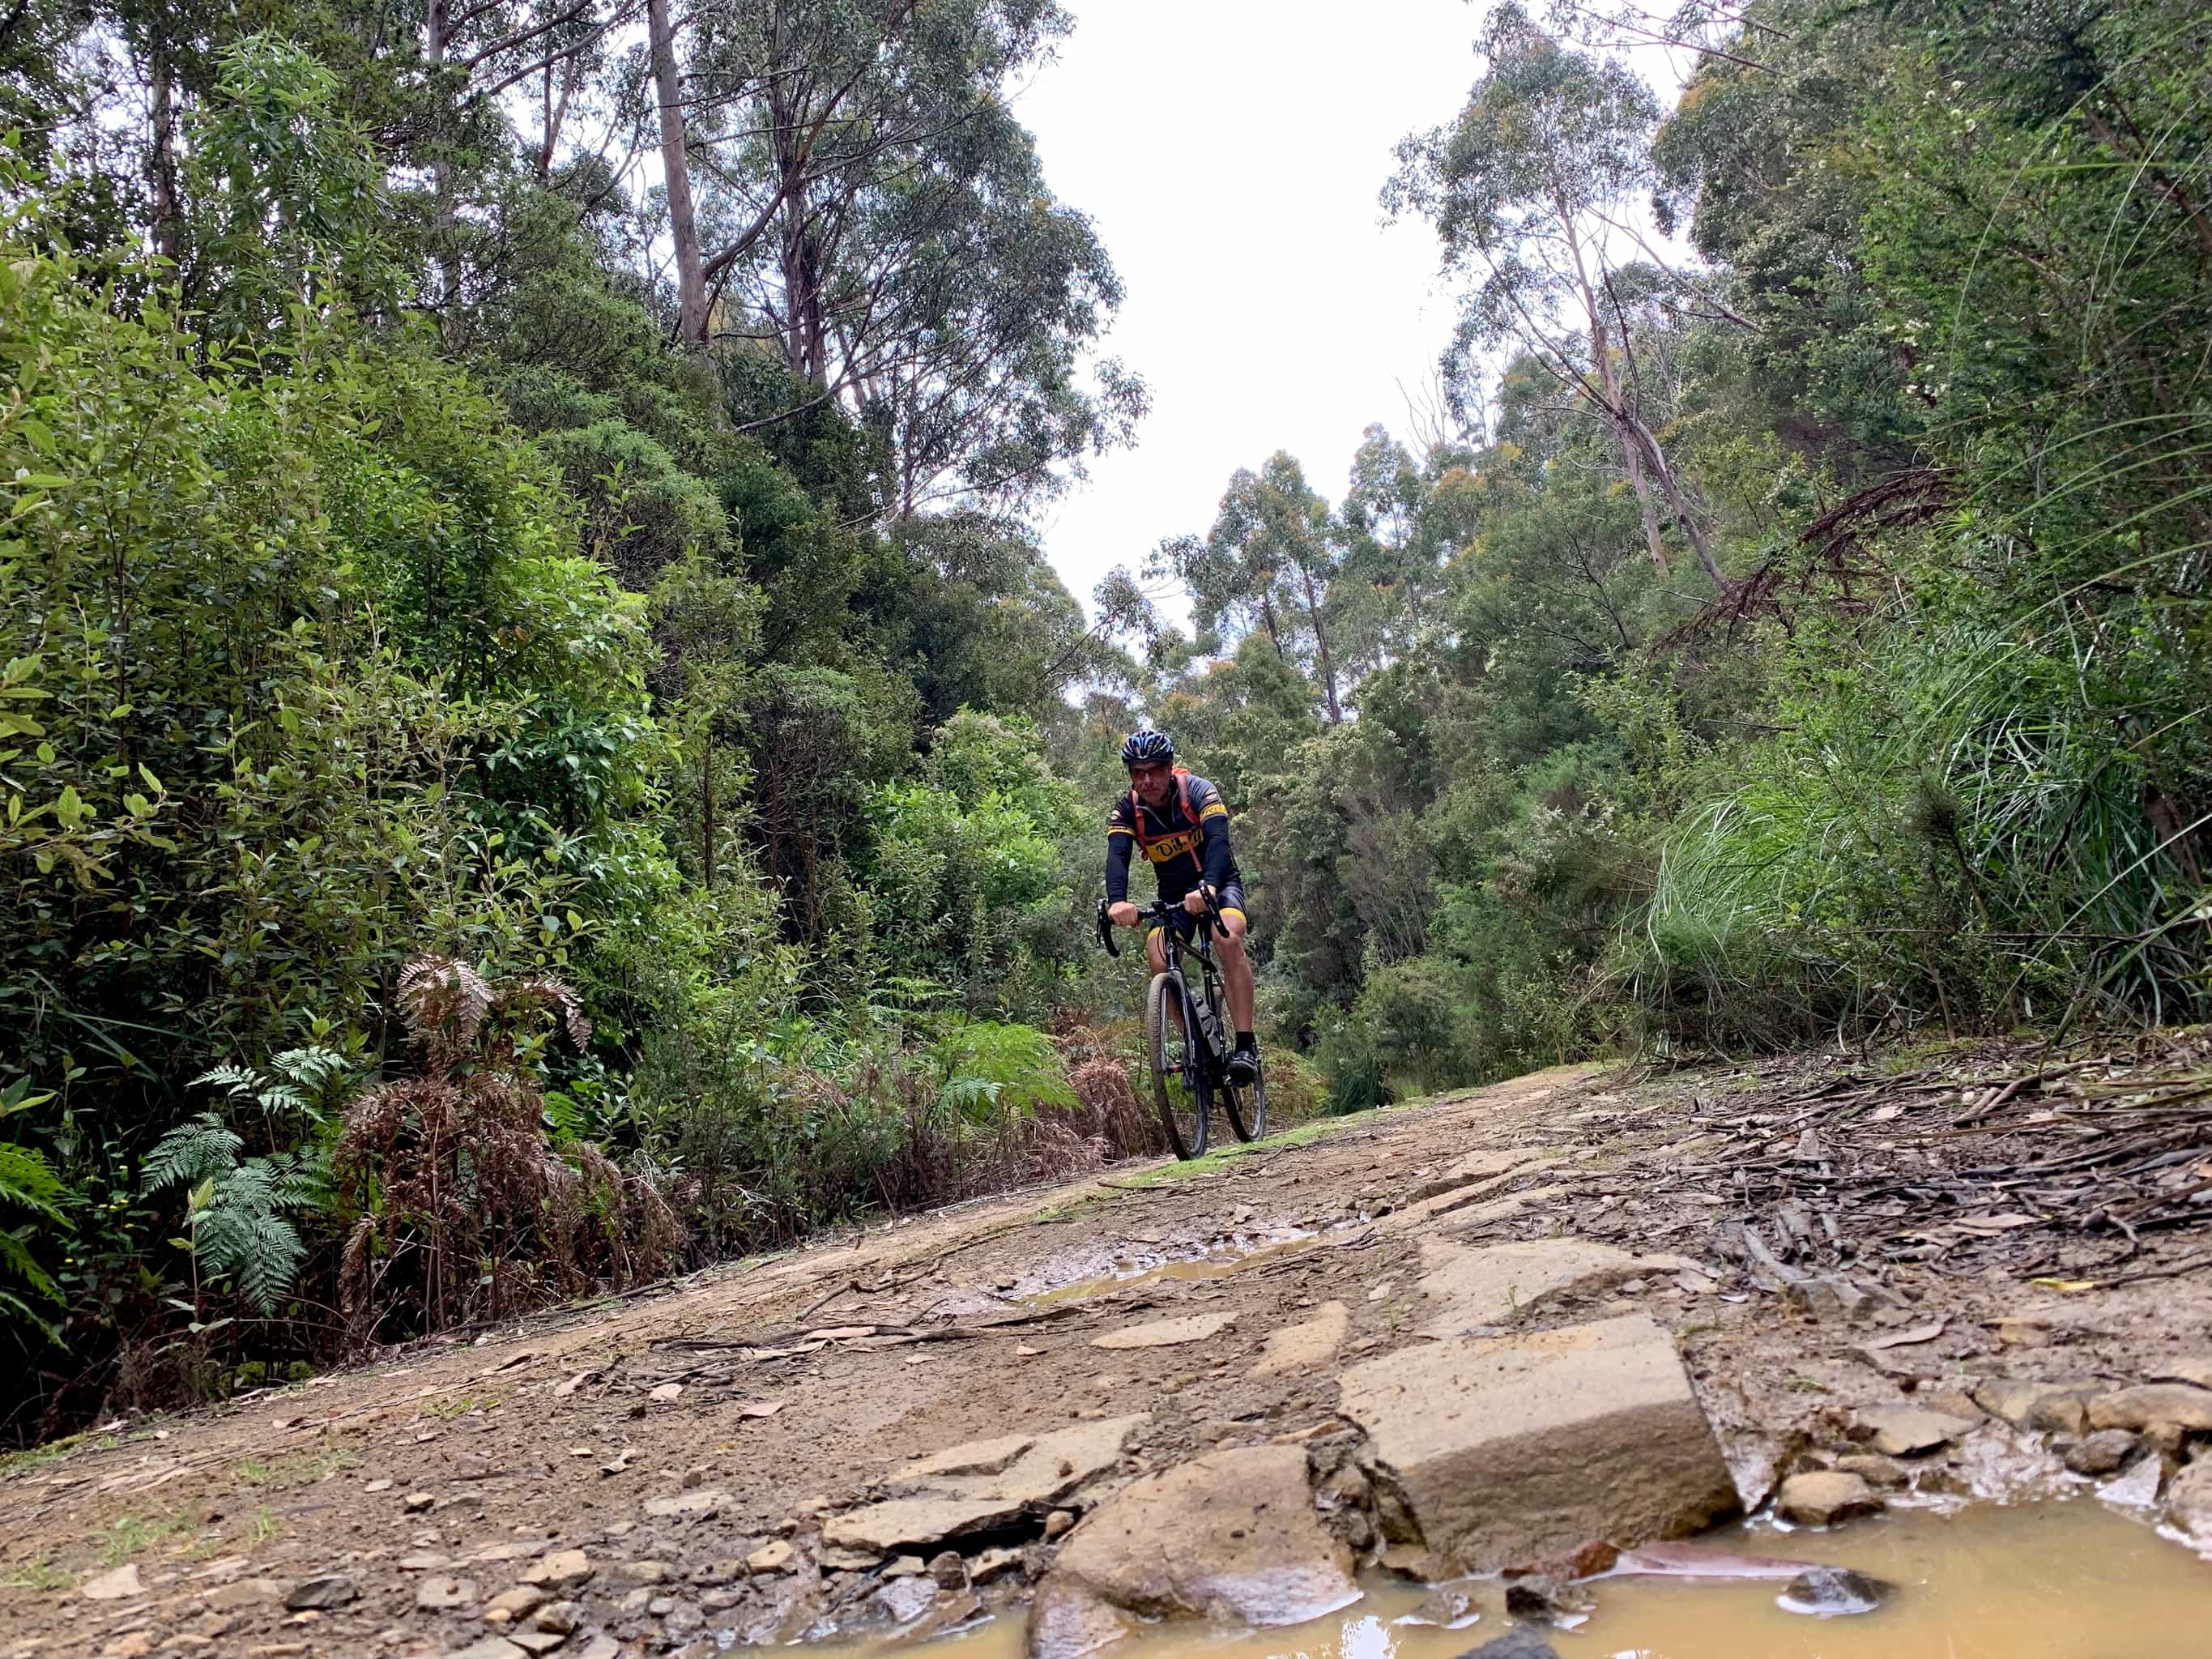 Bike rider on Staffords gravel road with puddles and larger, chunky rocks.